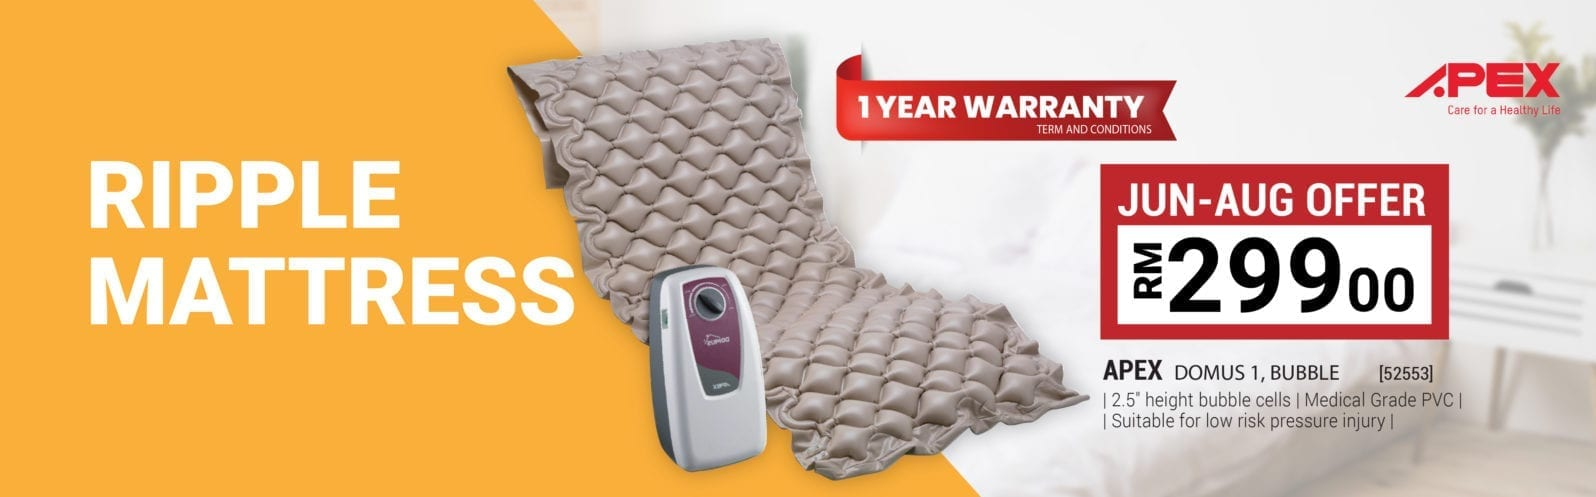 Alpro Pharmacy Oneclick silver care Ripple Mattress